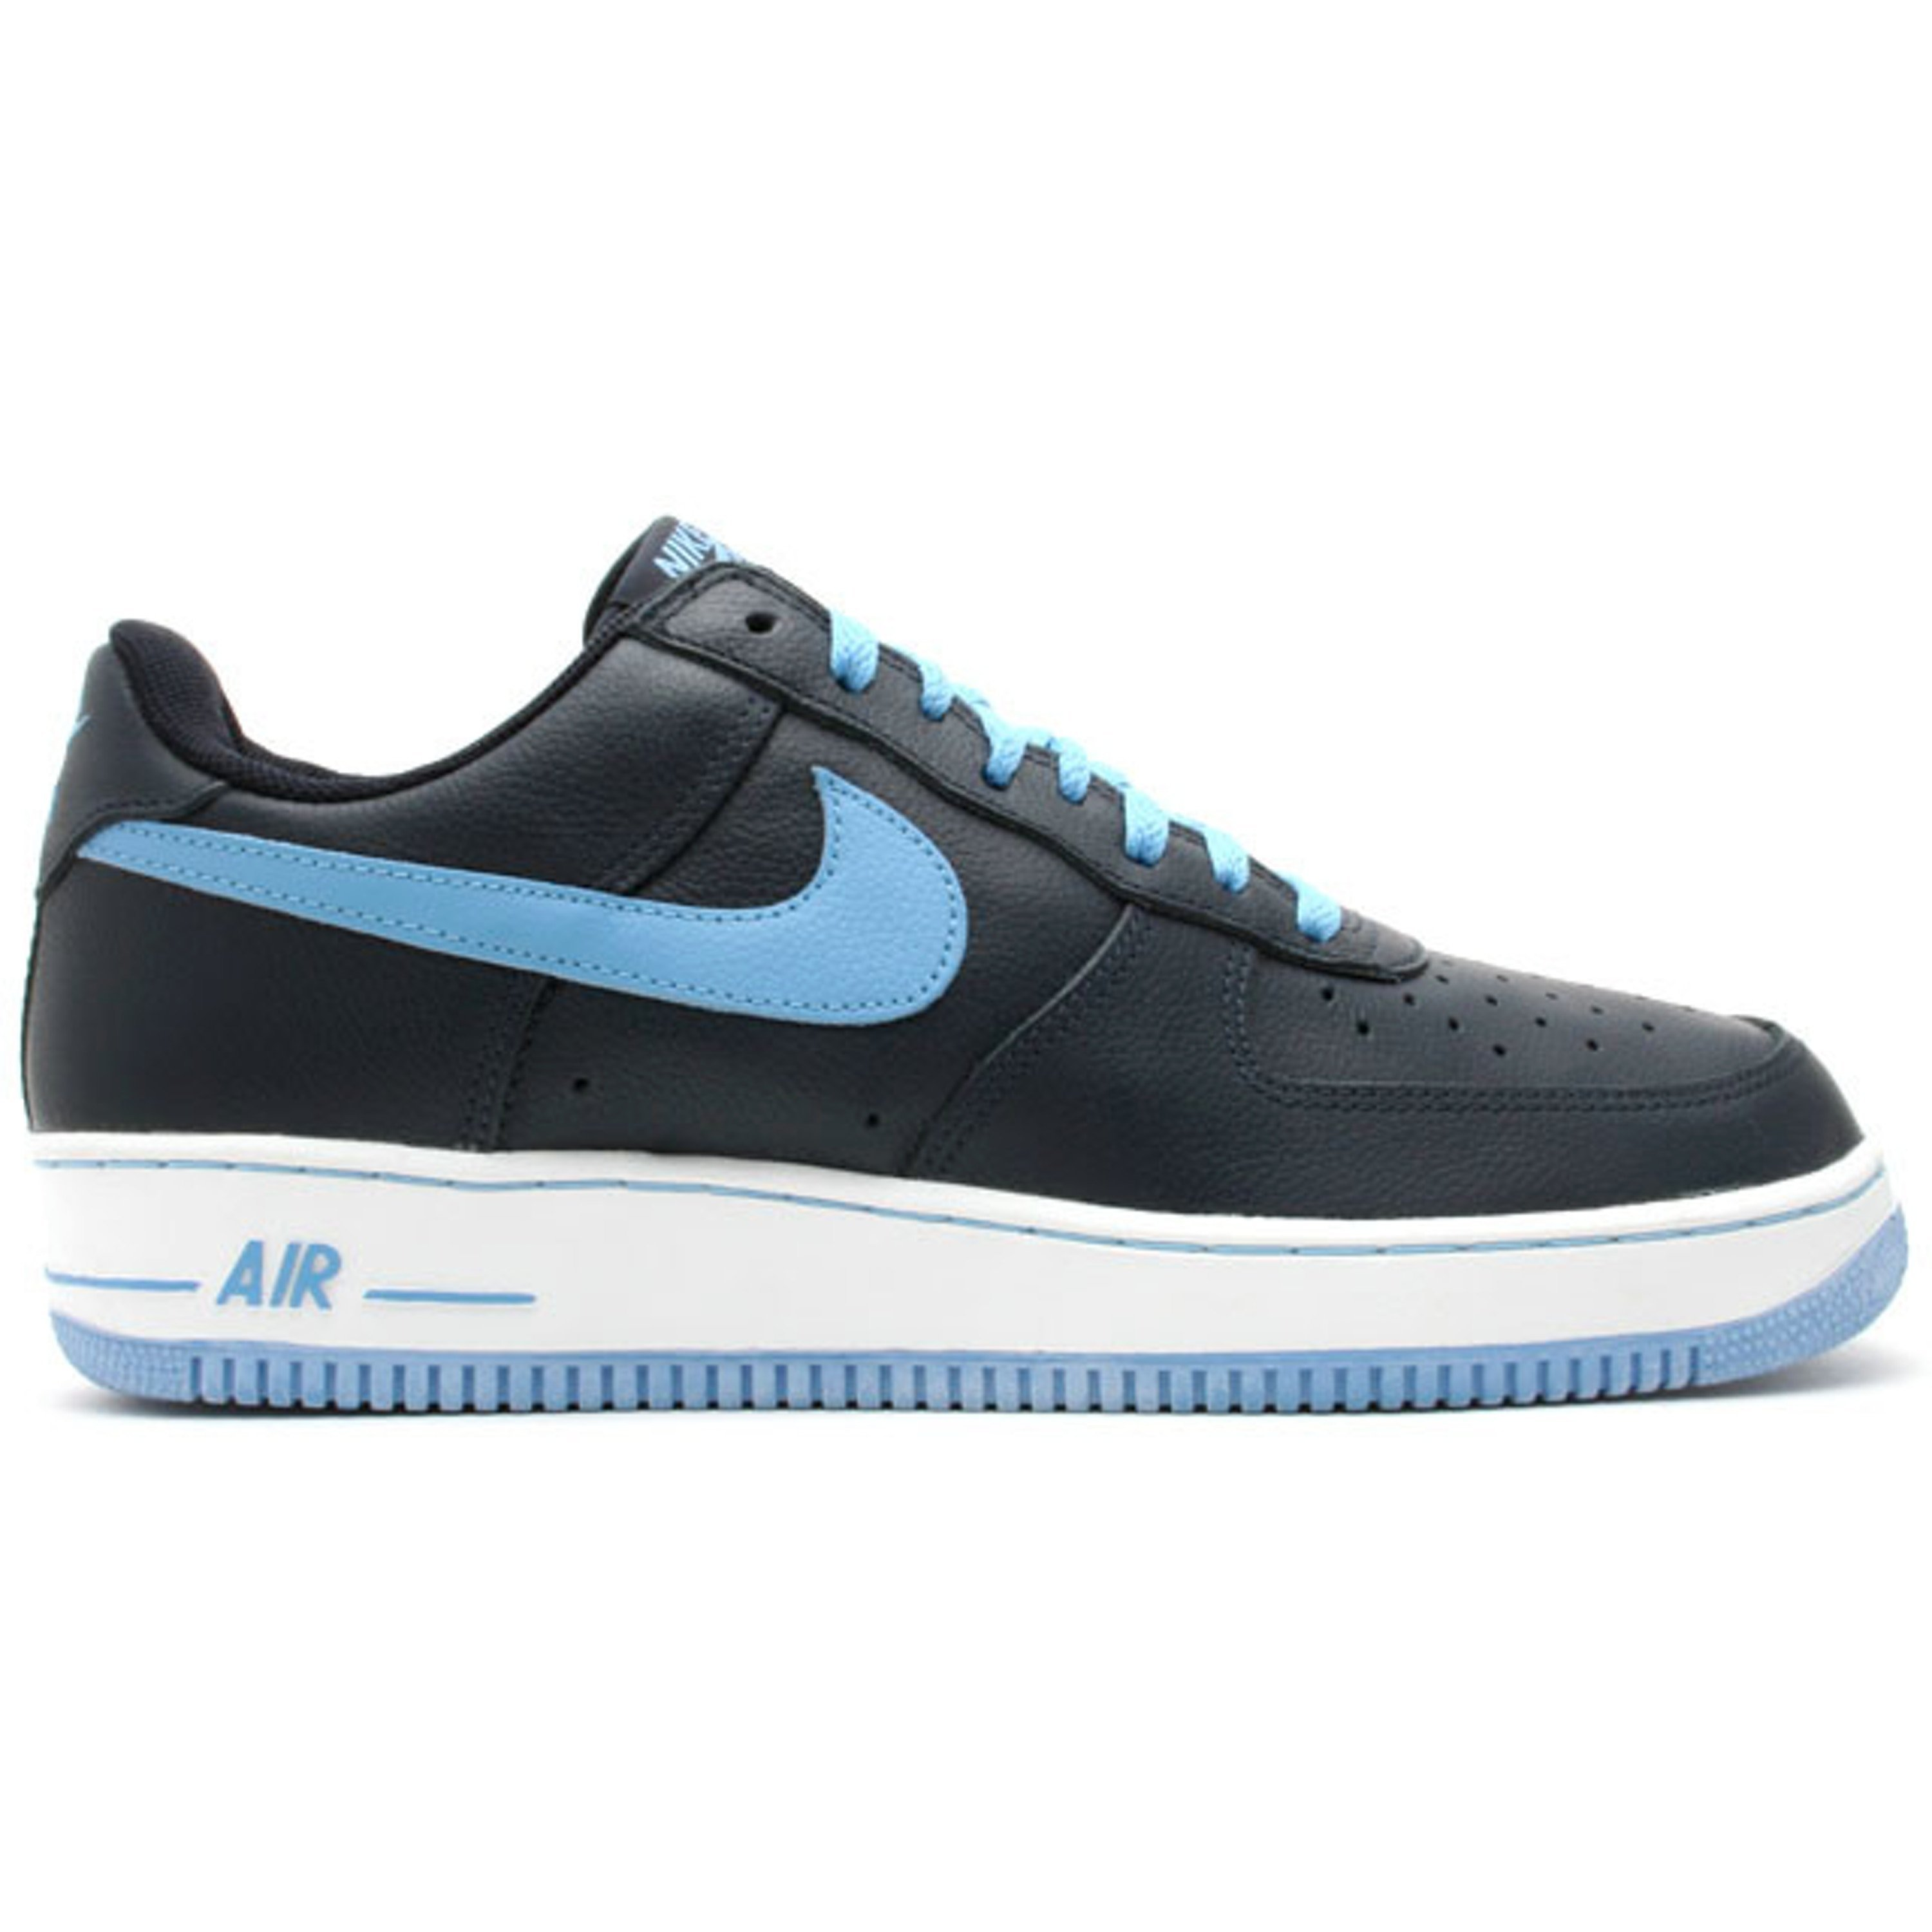 Nike Air Force 1 Low Obsidian Columbia Blue (624040-441)